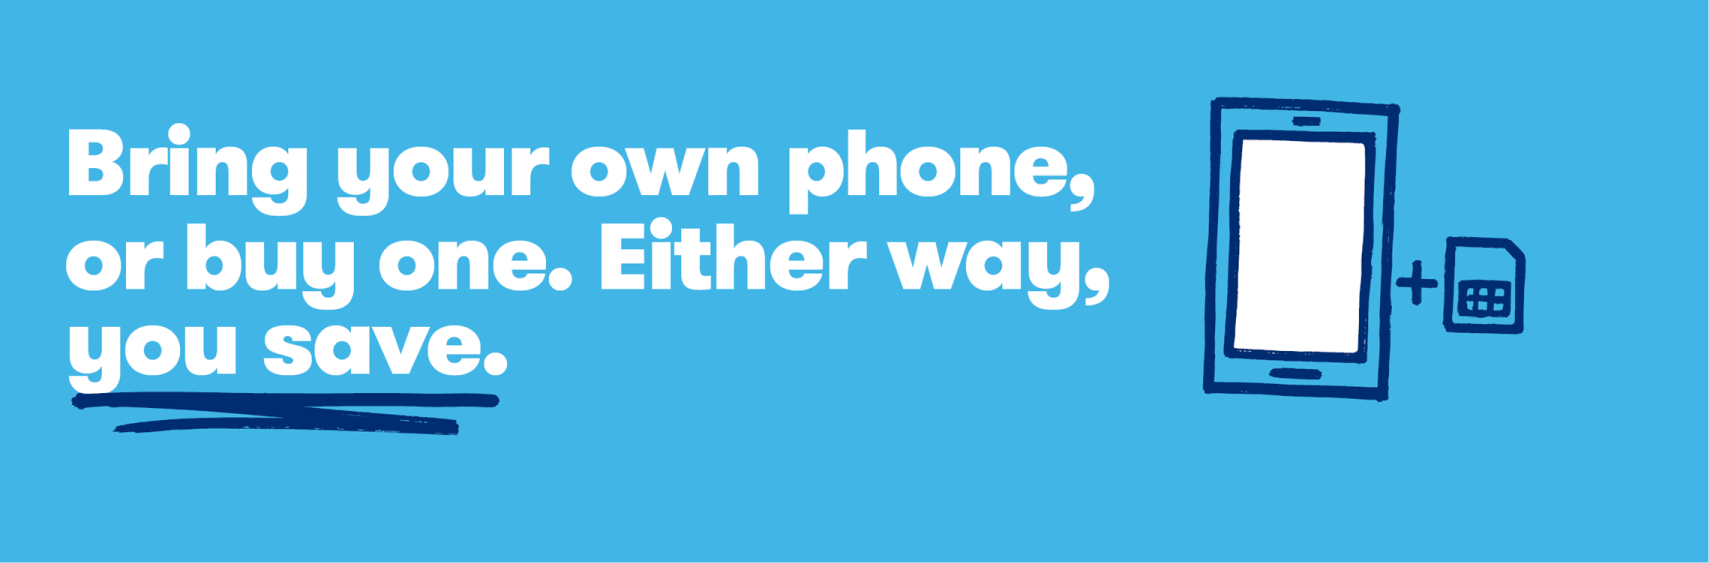 Bring your phone, buy your phone, save.